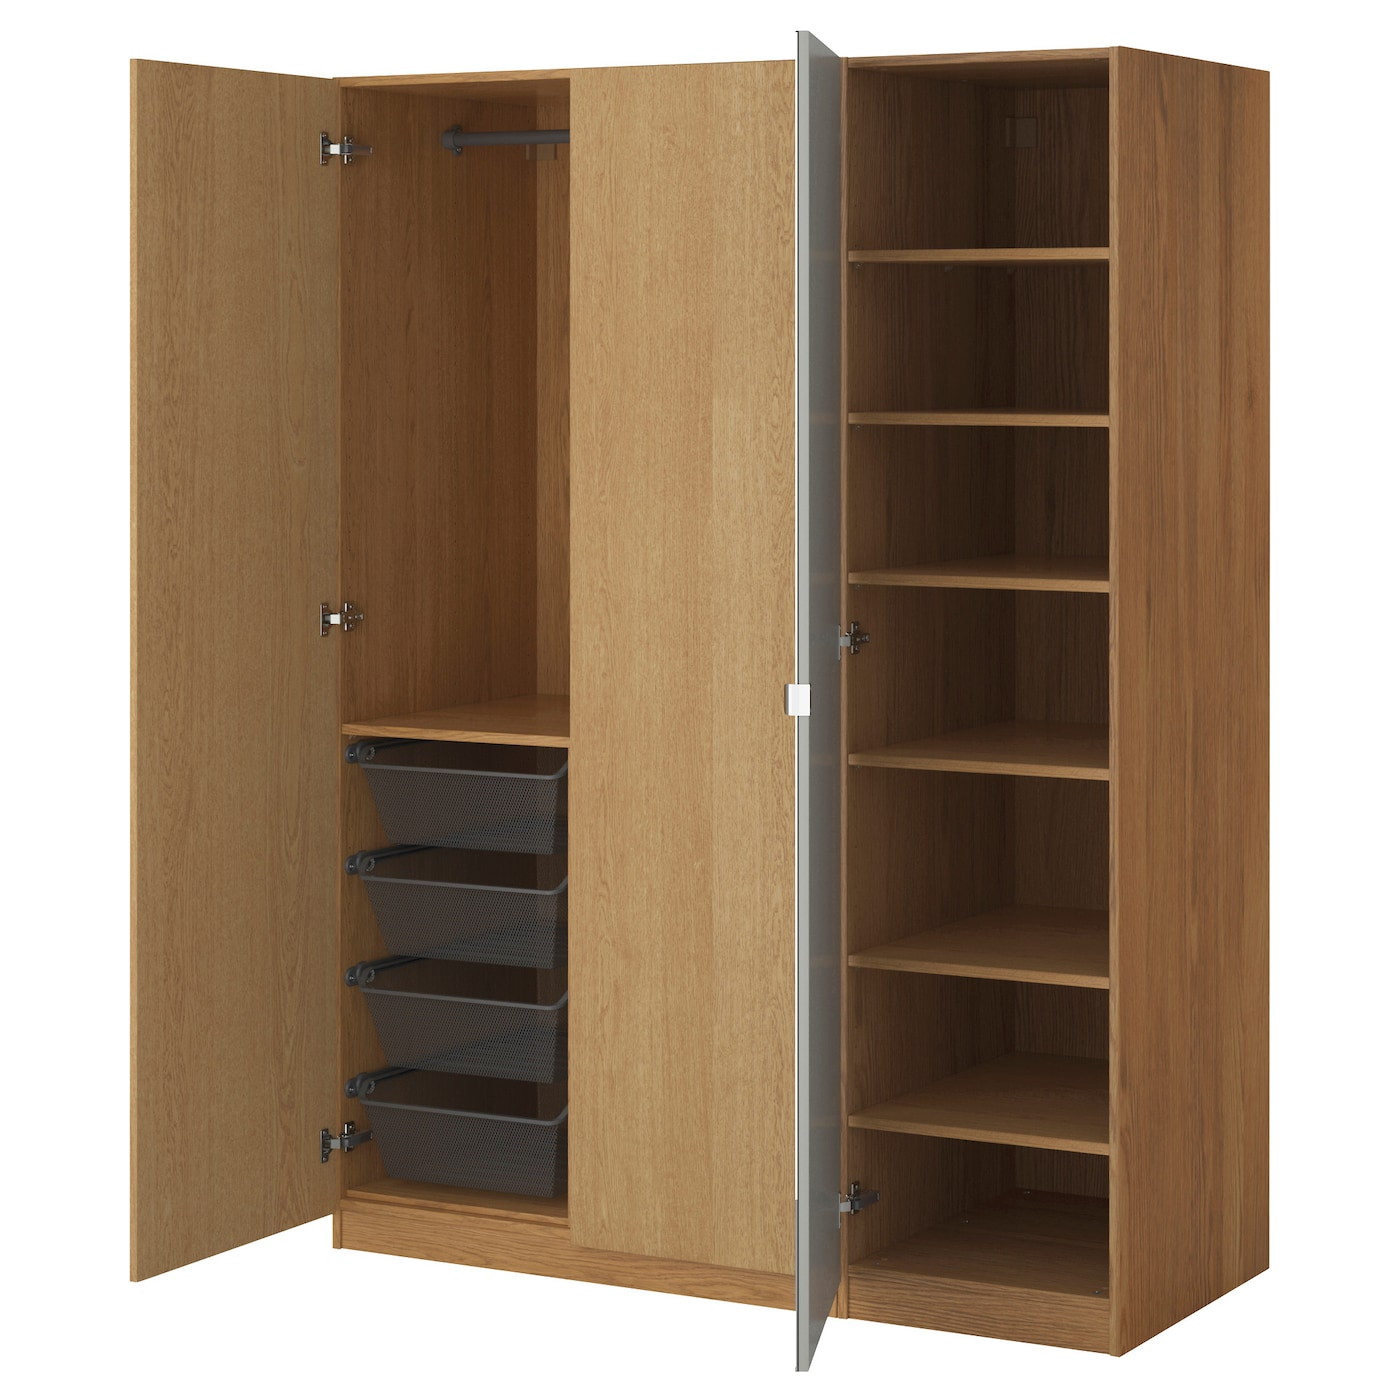 Wardrobes ikea for 1 door wardrobe with shelves